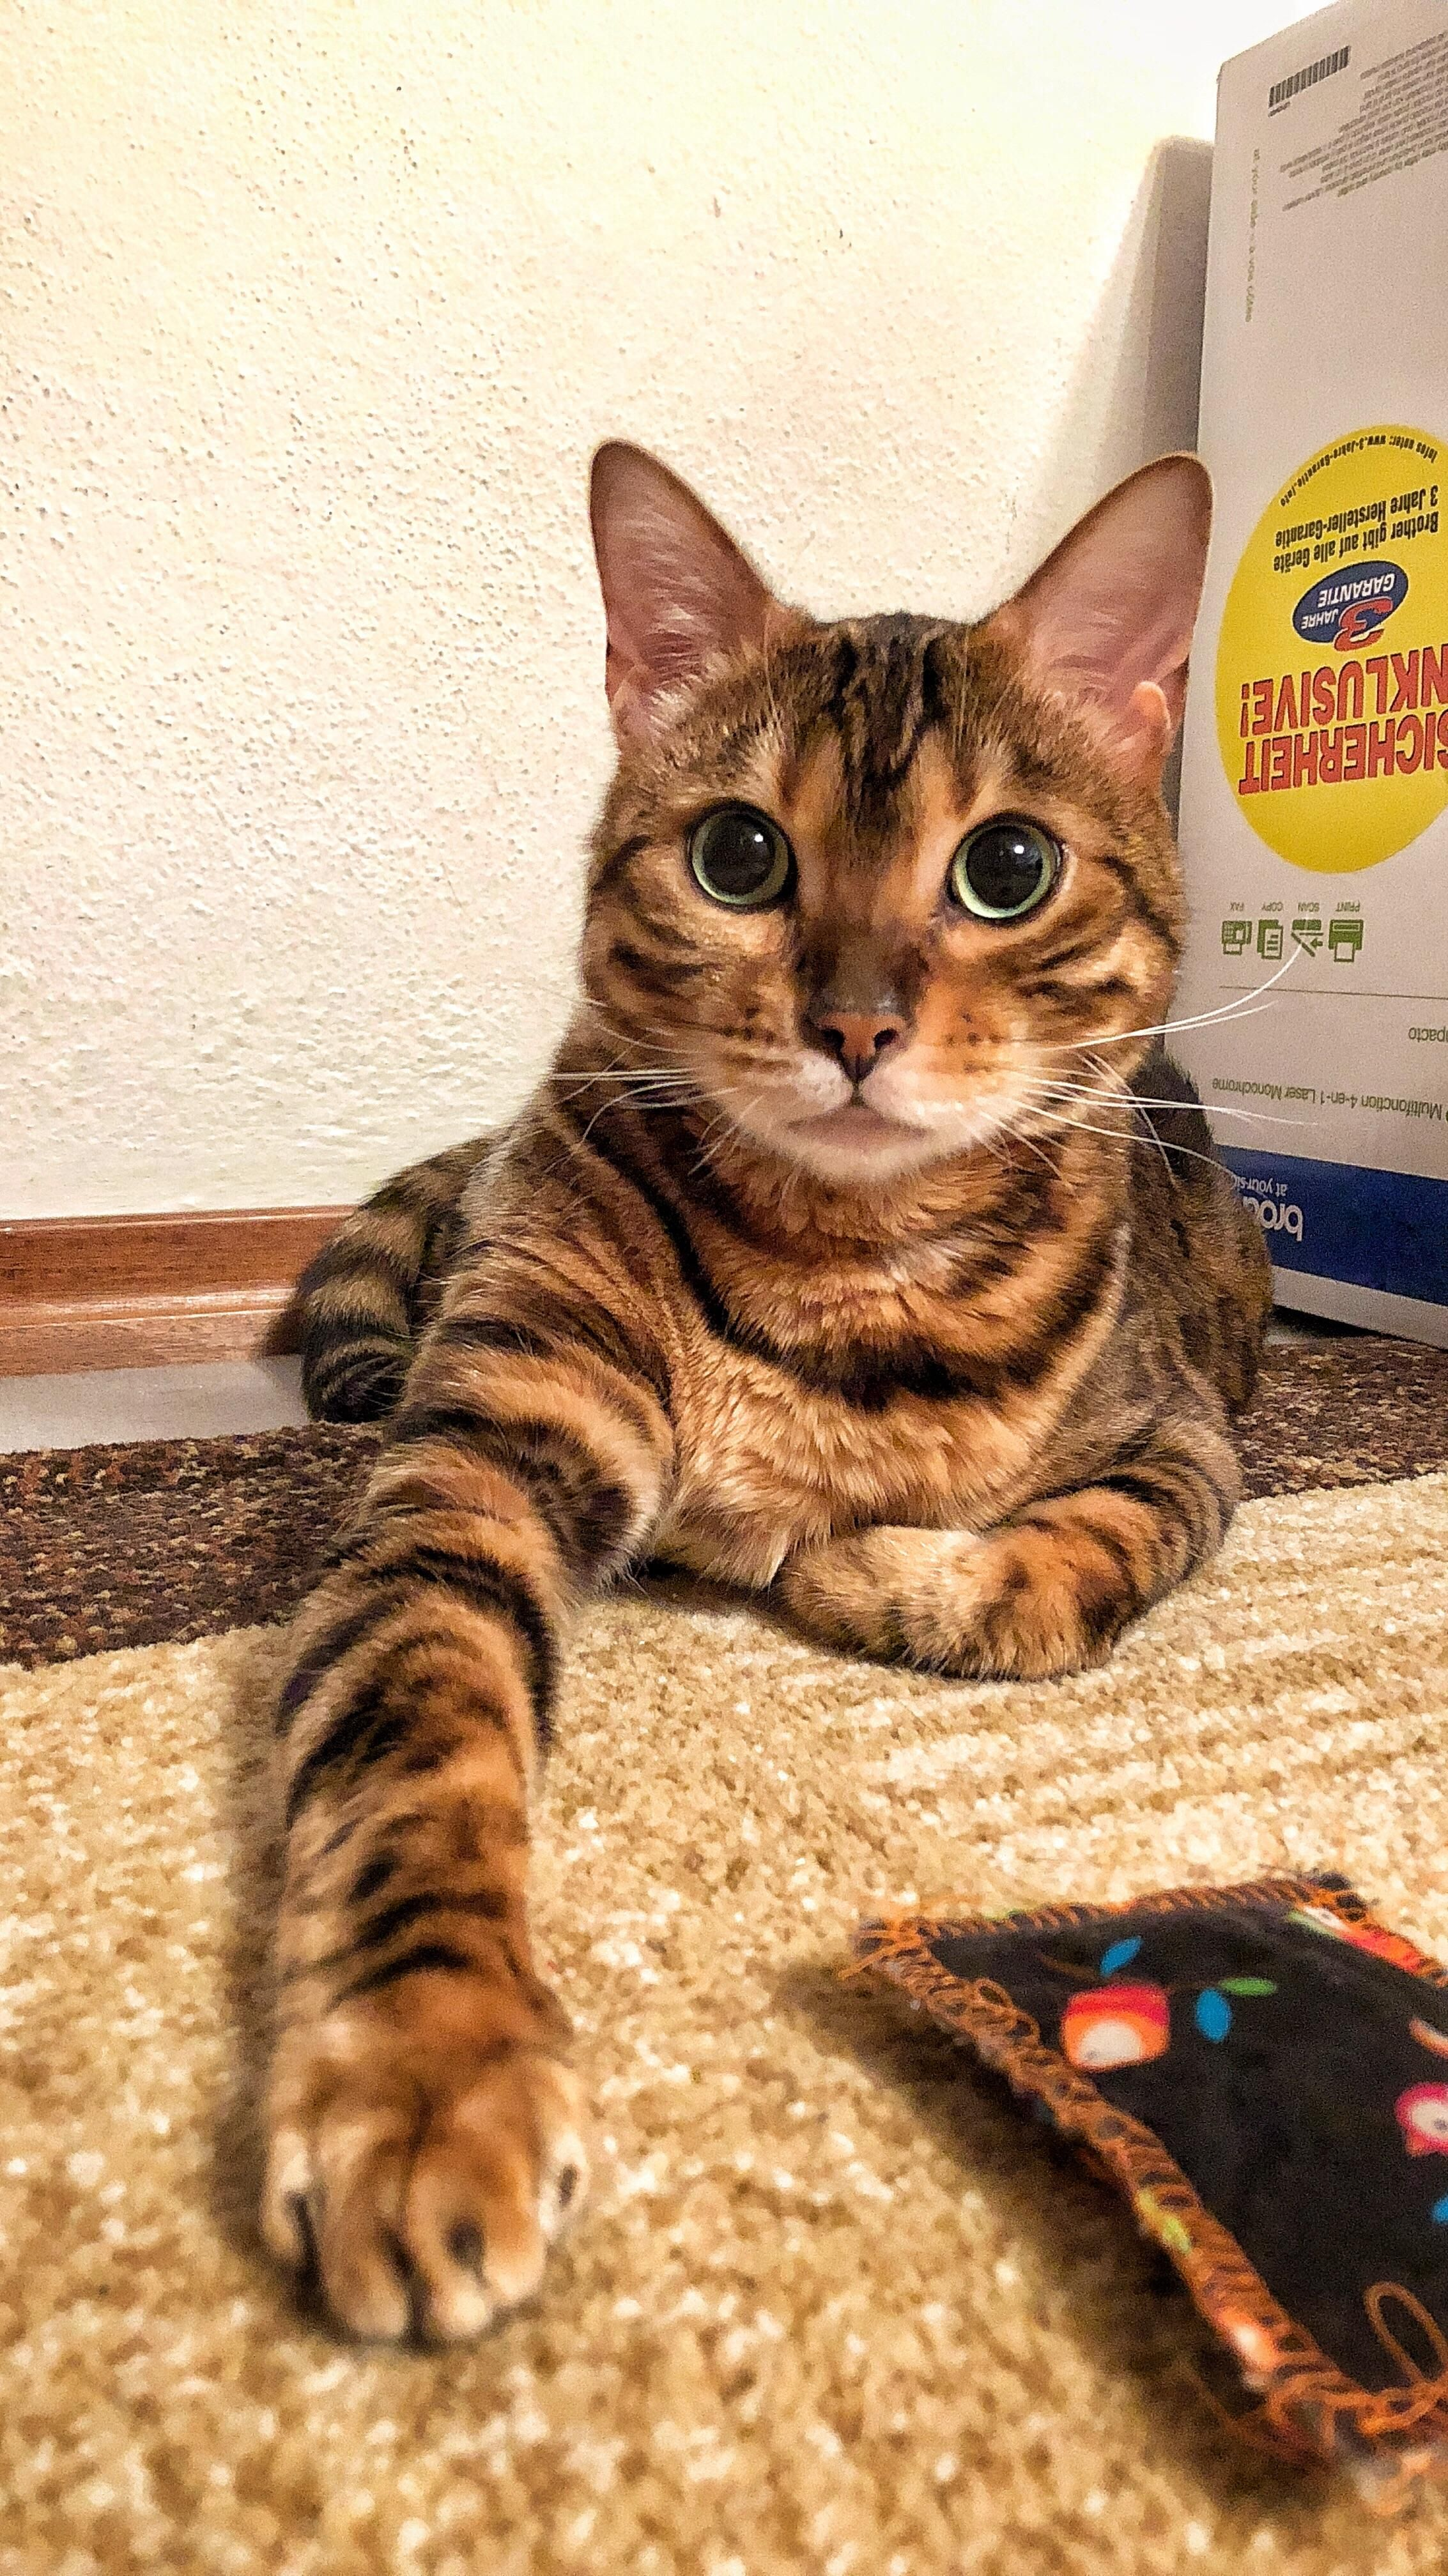 Good Boy Hello There Bright People Are You Catlover Or Have You Any Pretty Cats I Think You Love A Kitty Face So Follow Our Boards Cute Cats Kittens Cats